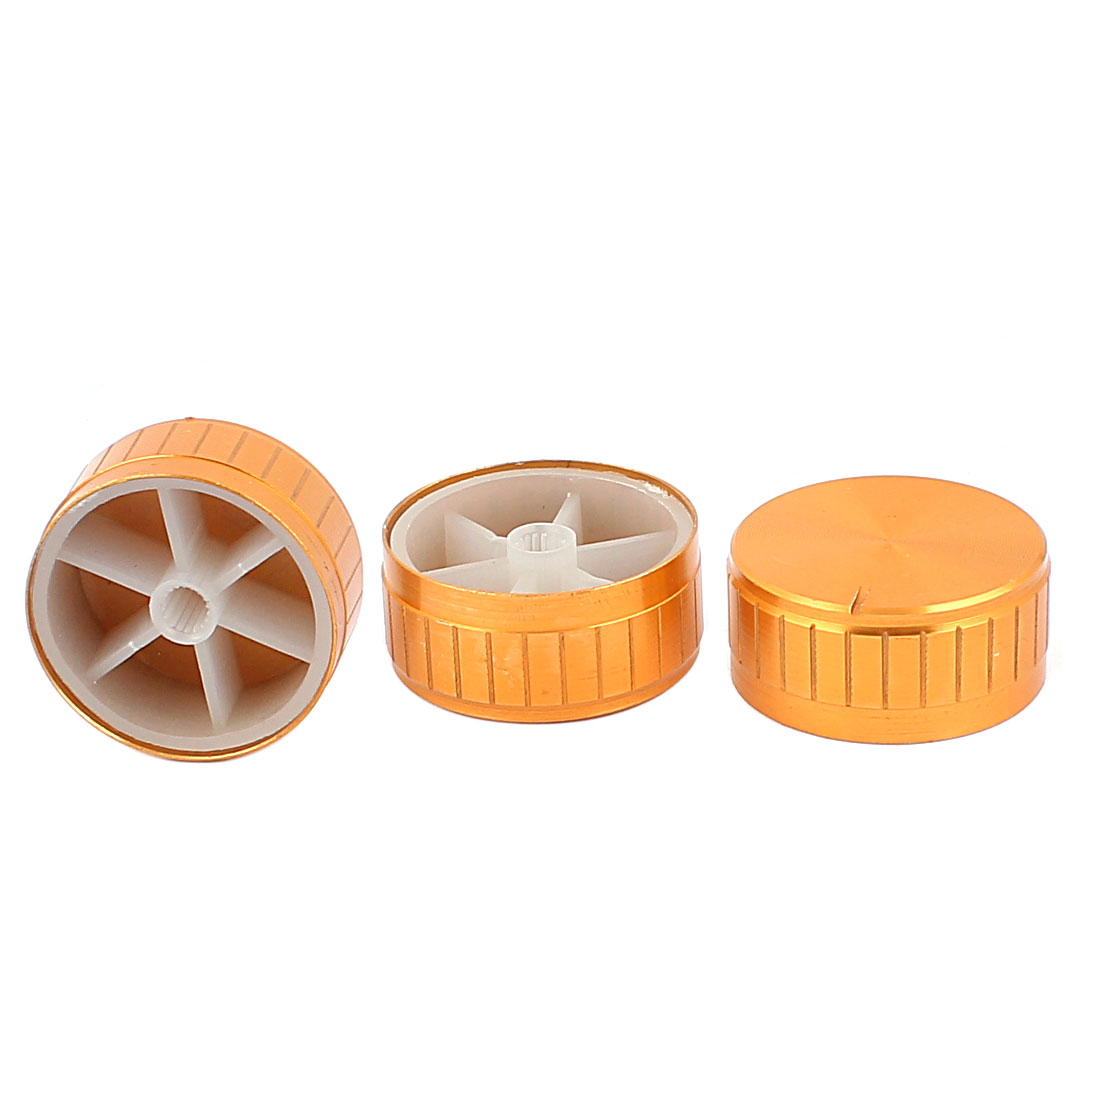 3 Pcs 40mm x 6mm Aluminium Alloy Potentiometer Control Knob Volume Cap Knurled Button Gold Tone